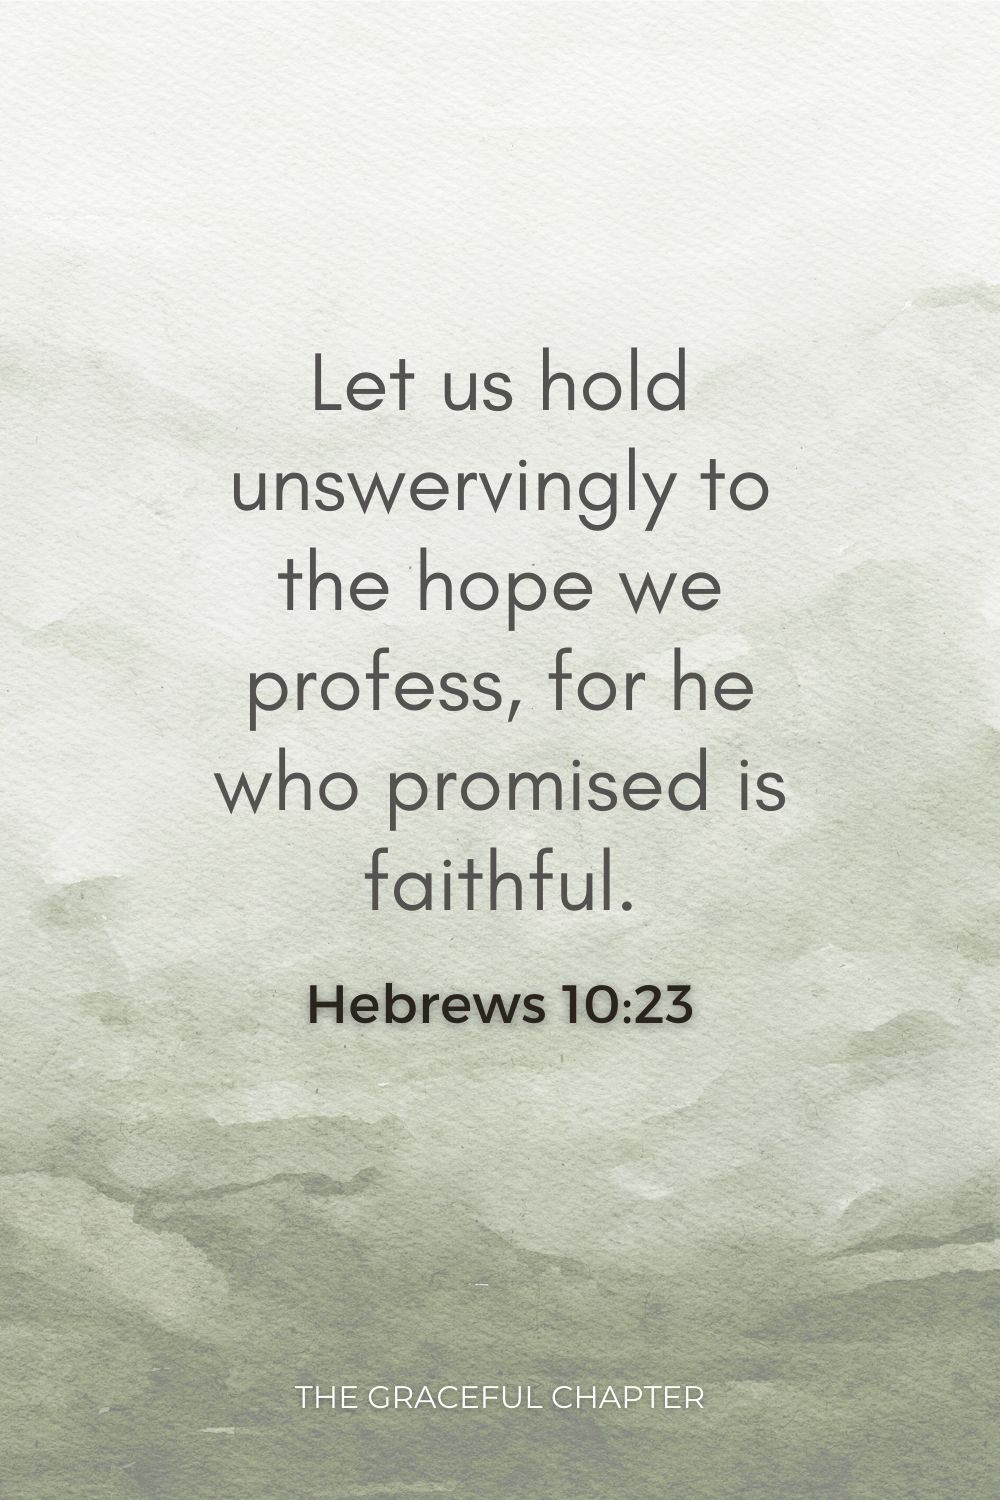 Let us hold unswervingly to the hope we profess, for he who promised is faithful. Hebrews 10:23